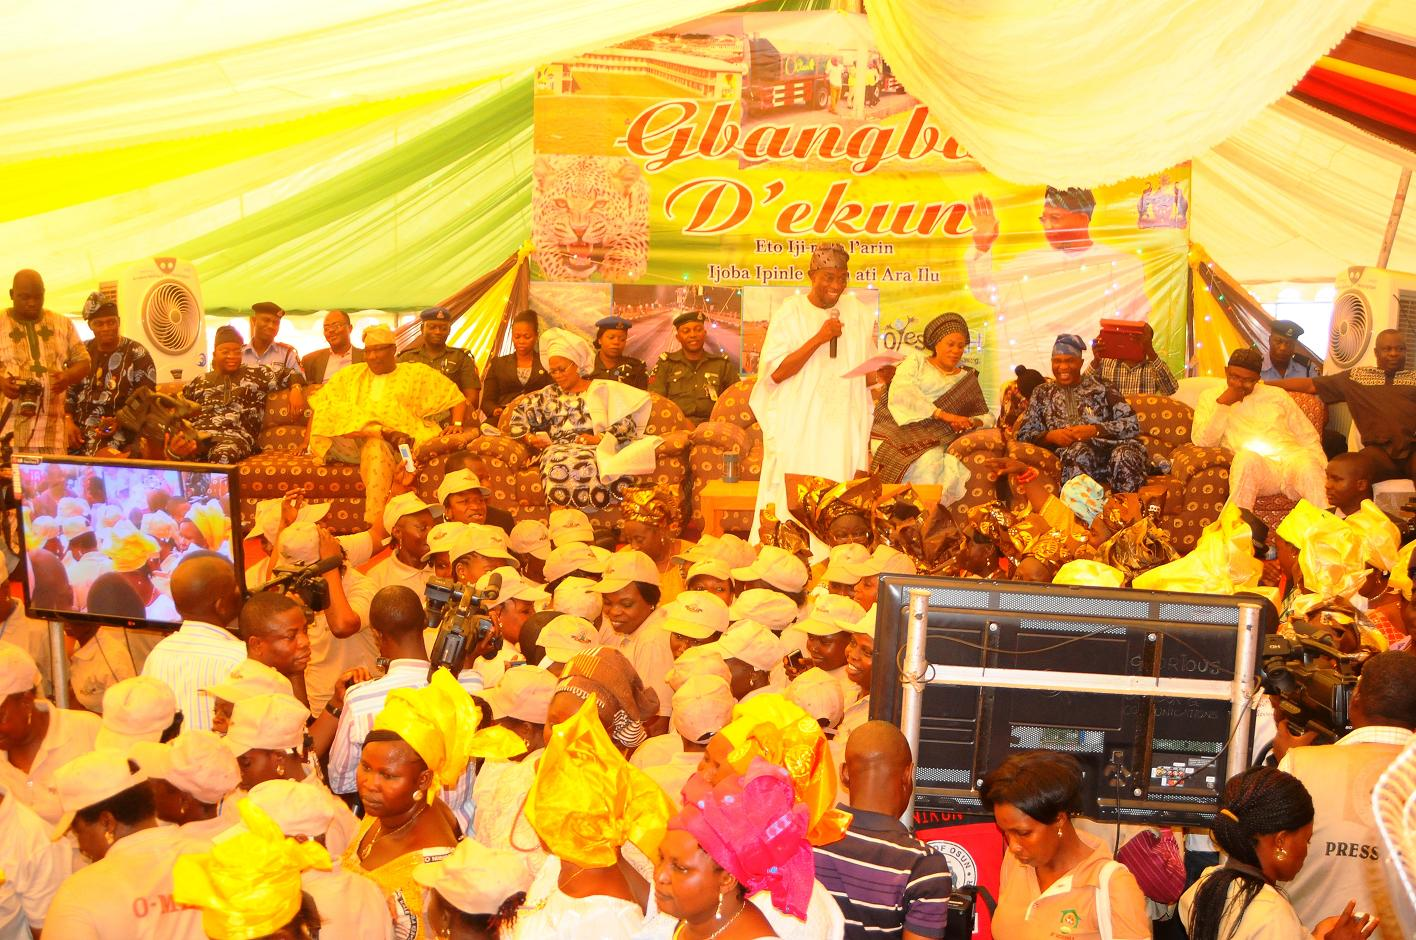 """Governor State of Osun, Ogbeni Rauf Aregbesola (standing) addressing the people of Ijeshaland after their word of support for his Second Term in office,  during the 6th edition of an interactive programme tagged, """"Gban-gba Dekun"""" in Ijesha South Federal Constituency consisting of Ilesa West, Ilesa East, Atakumosa East and Atakumosa West Local Governments at Ilesa High School, Ilesa, State of Osun last week"""